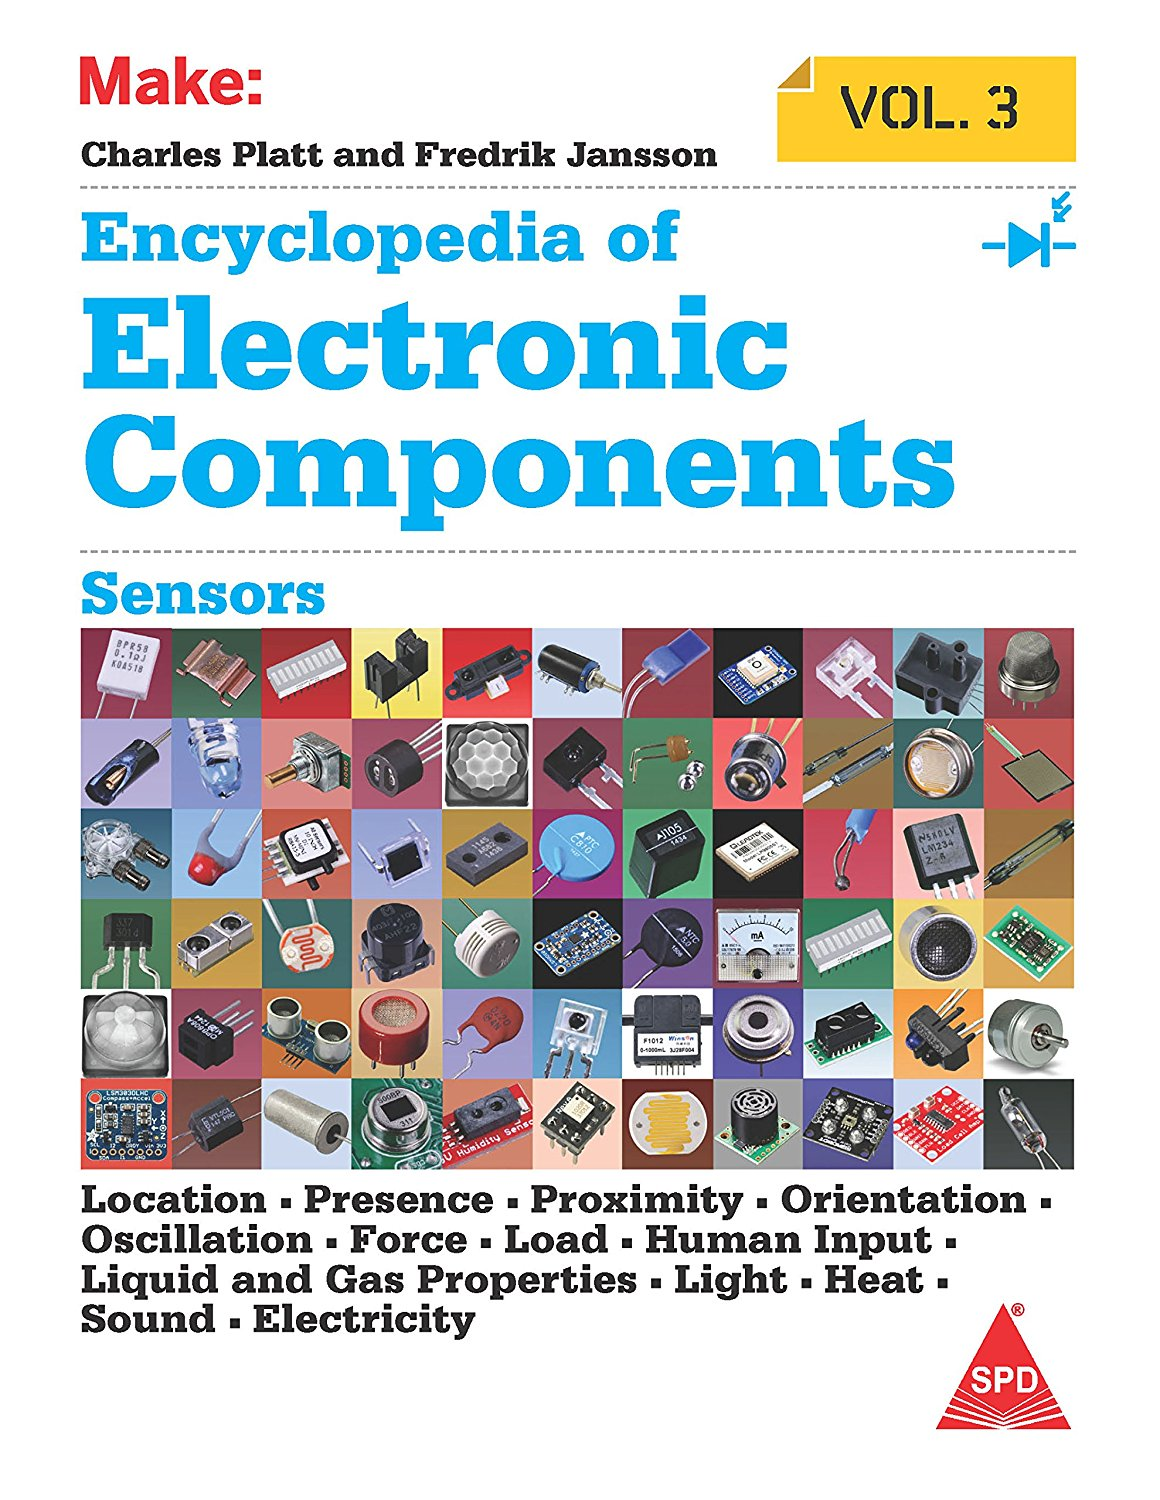 Books do it yourself diy electronic project encyclopedia books do it yourself diy electronic project encyclopedia of electronic components volume 3 solutioingenieria Gallery